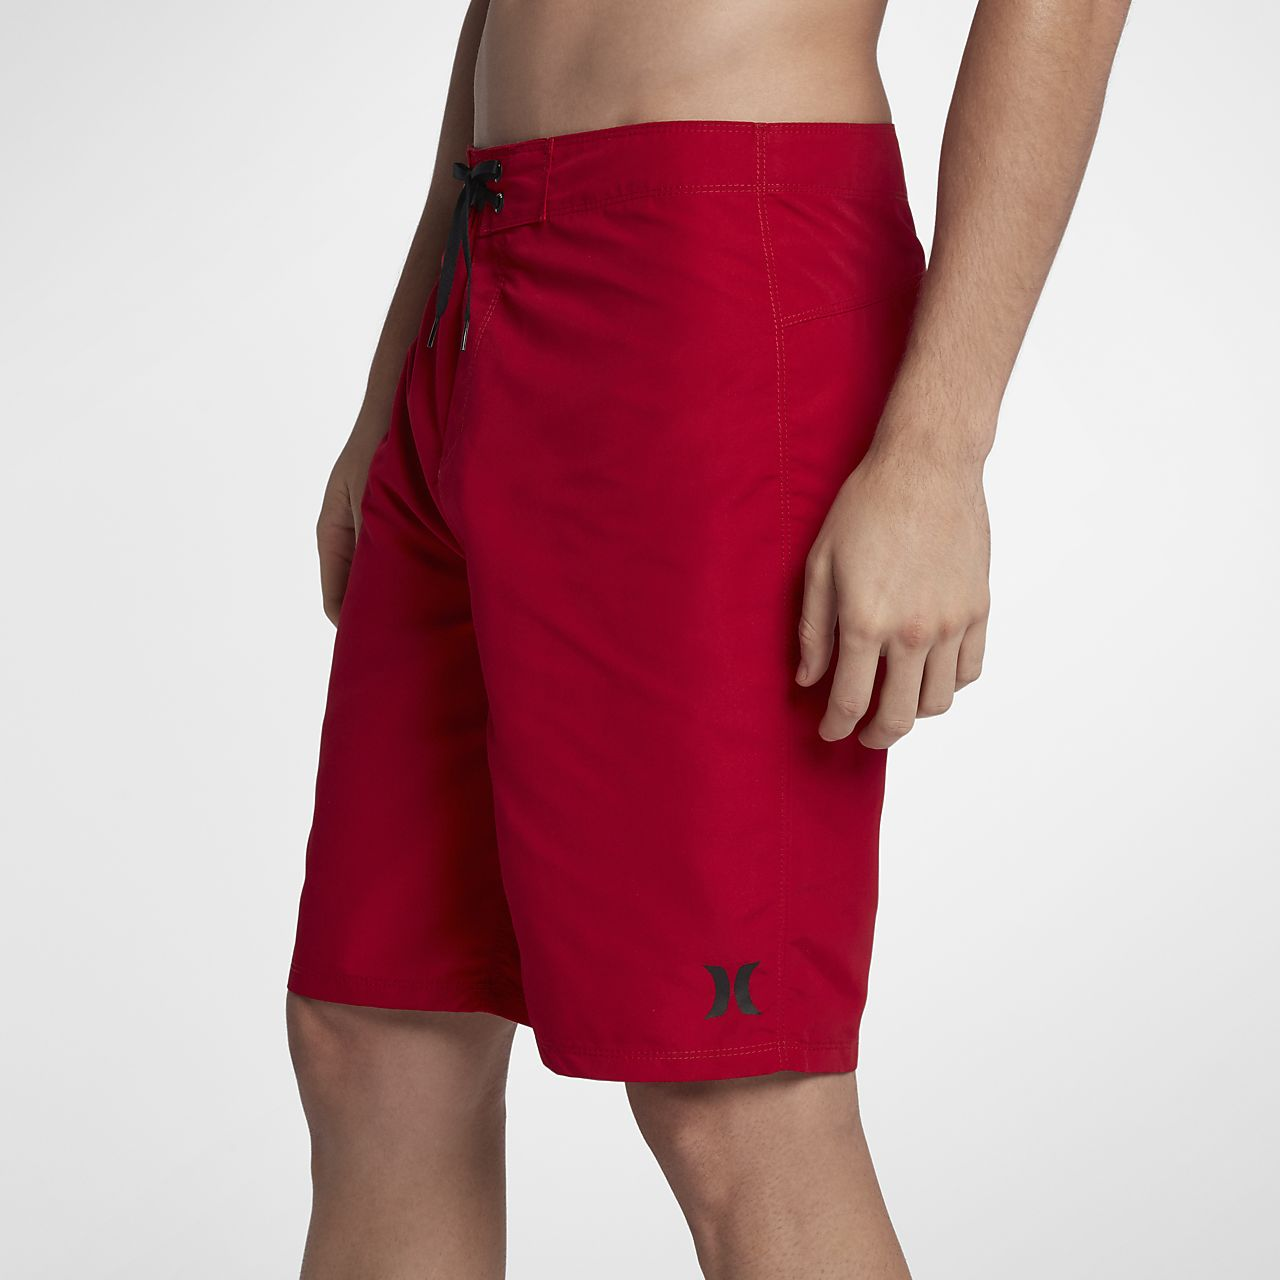 Nike Hurley One And Only Gym Red All Styles